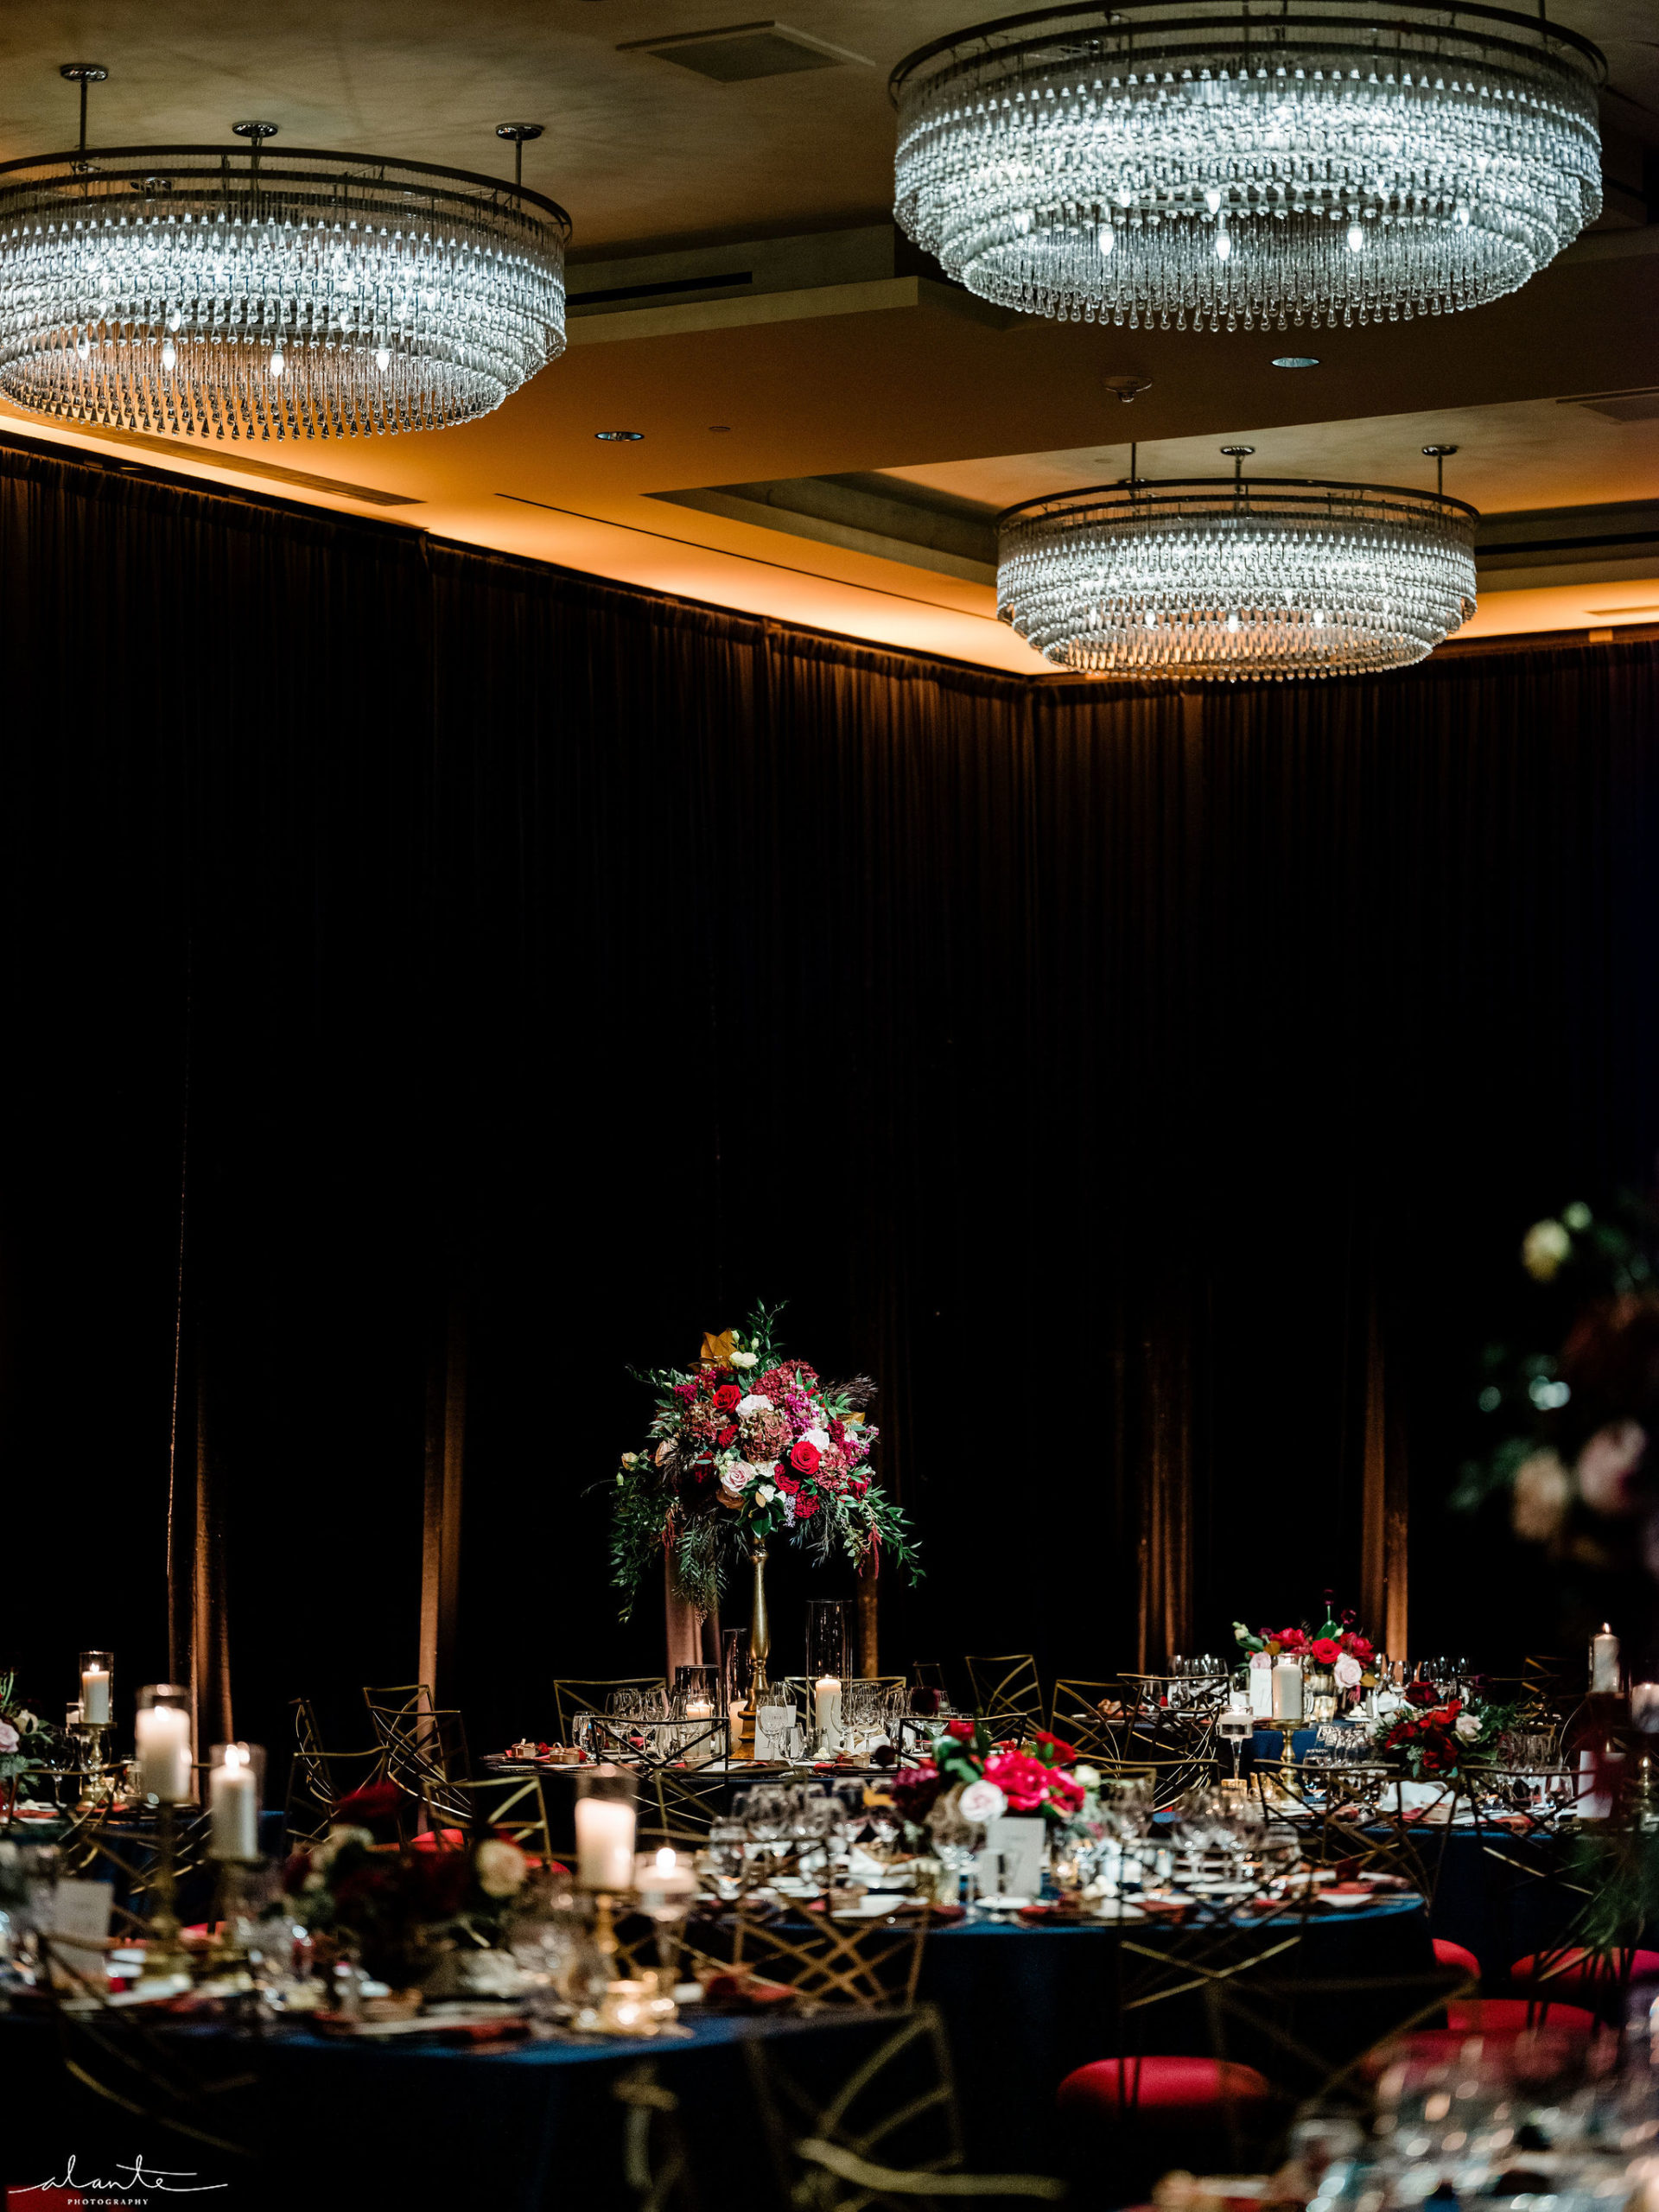 Dramatic December wedding at the Four Seasons Seattle ballroom with tall red floral centerpieces designed by Flora Nova Design.